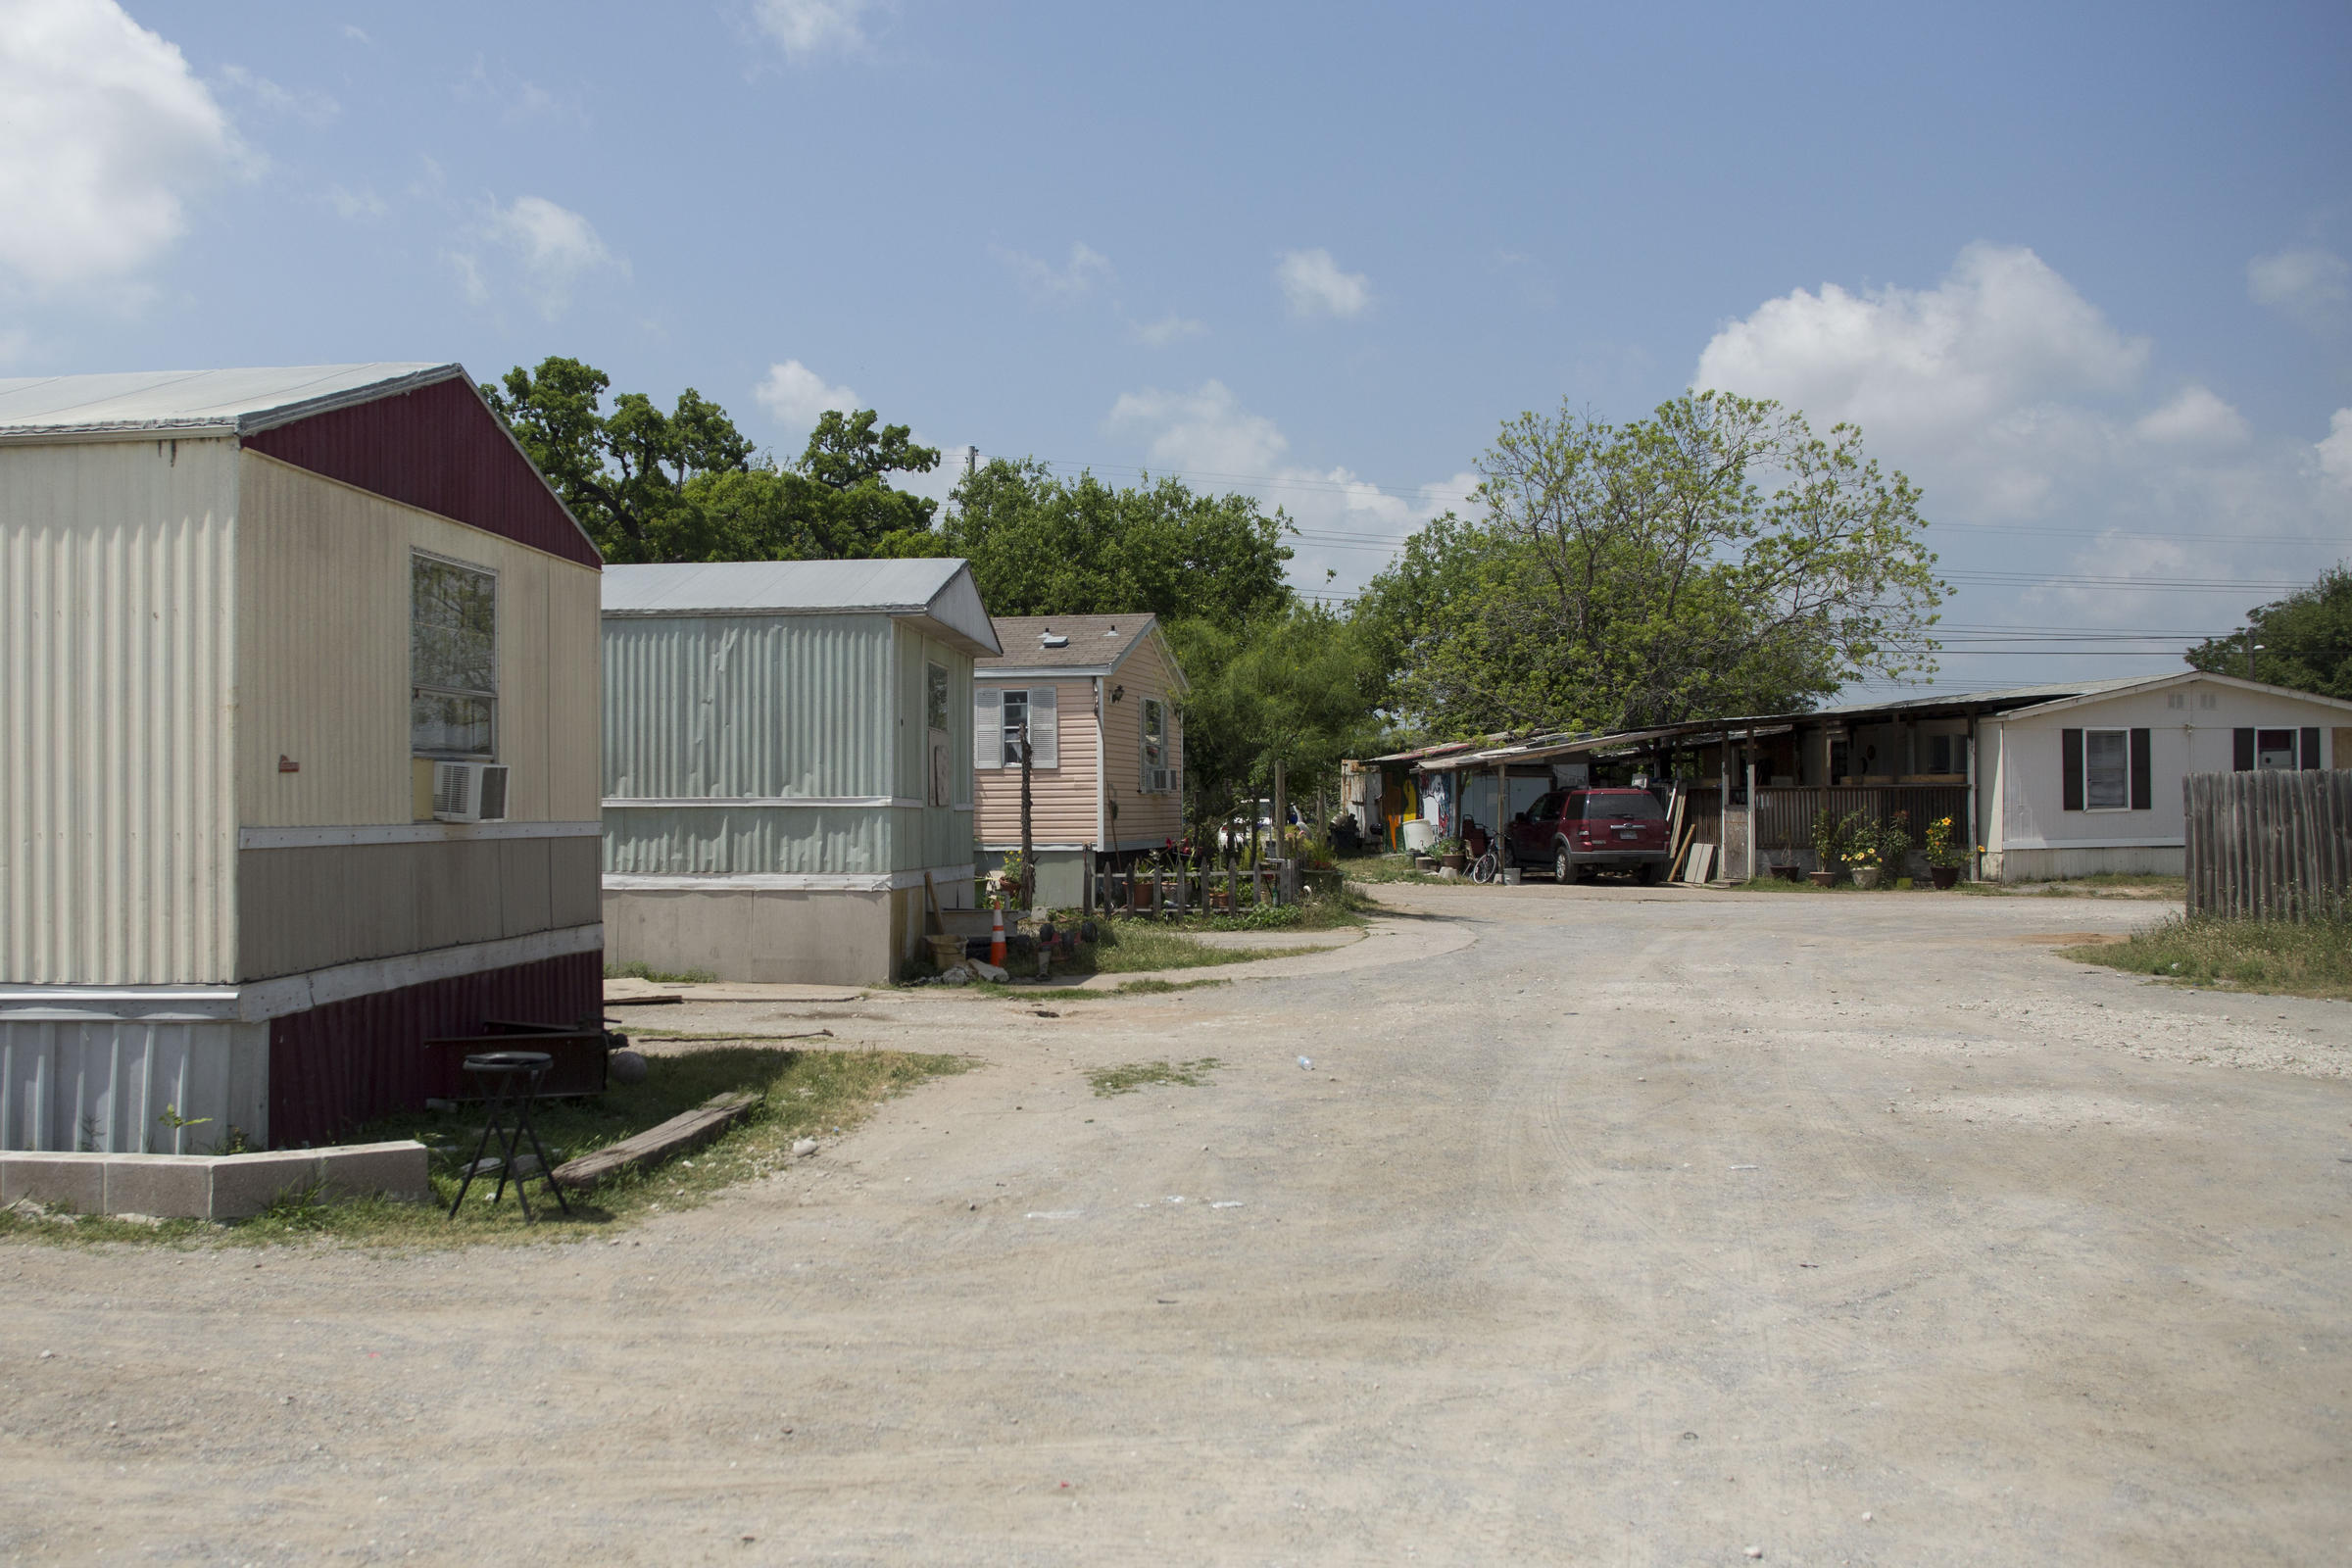 Council Member Renteria Seeks Amenities For Mobile Home Parks